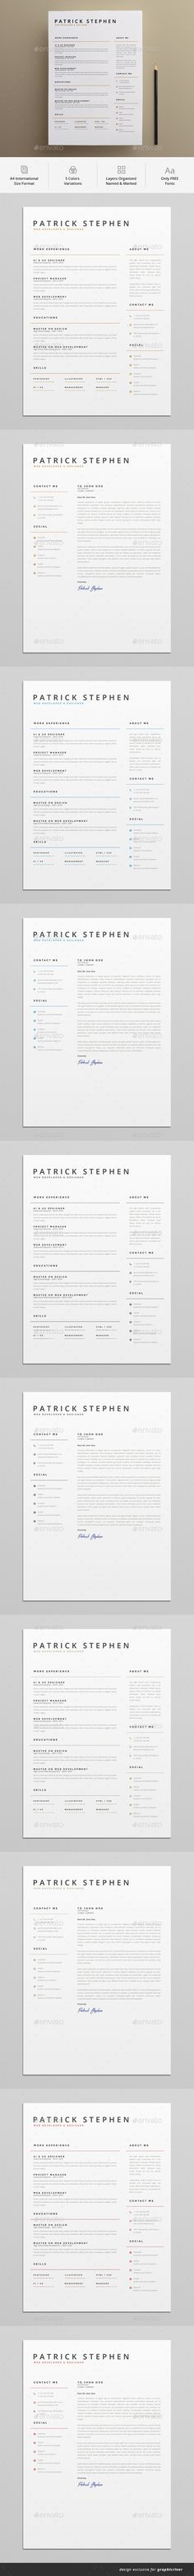 #Resume - Resumes Stationery Download here: https://graphicriver.net/item/resume/17494830?alena994